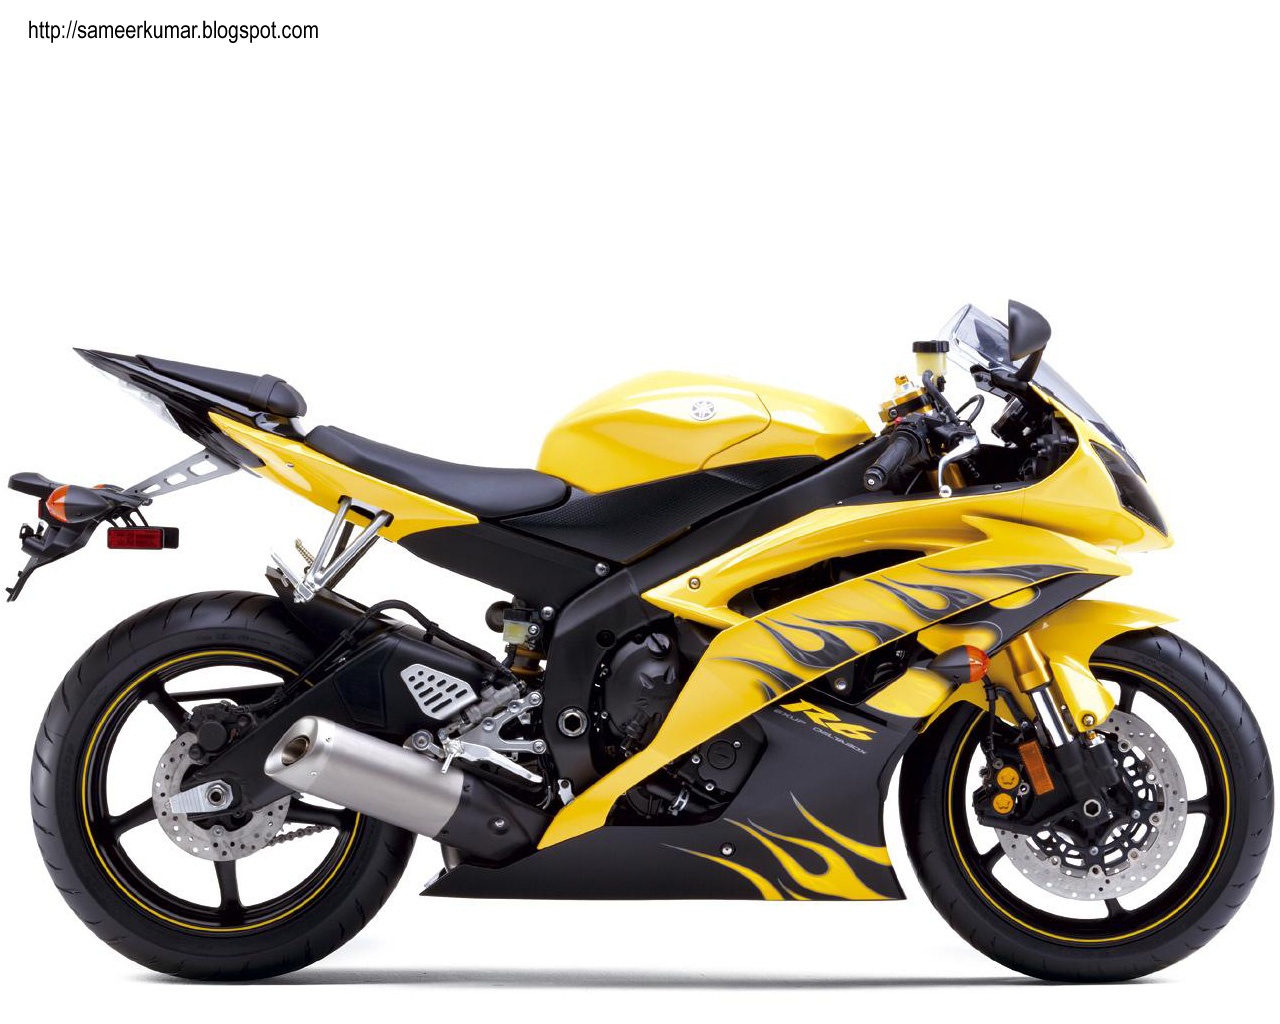 yamaha r6 sports bike wallpapers - Yamaha R6 Sports Bike Wallpapers HD Wallpapers